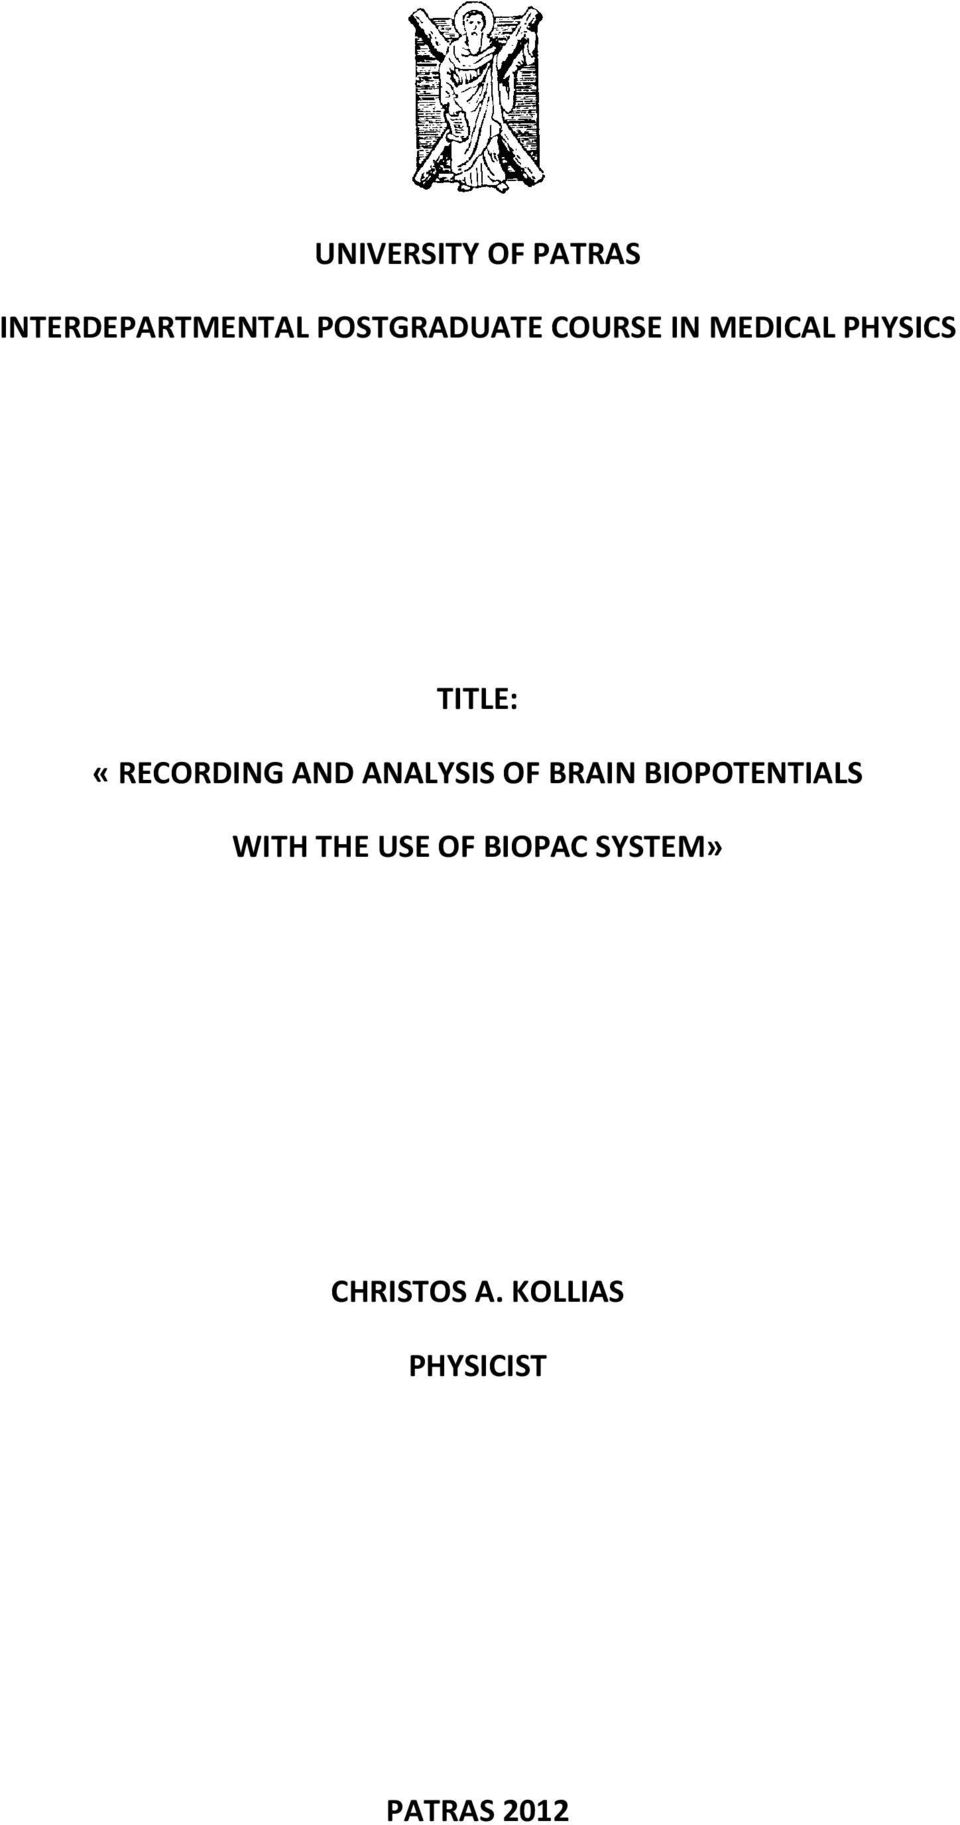 «RECORDING AND ANALYSIS OF BRAIN BIOPOTENTIALS